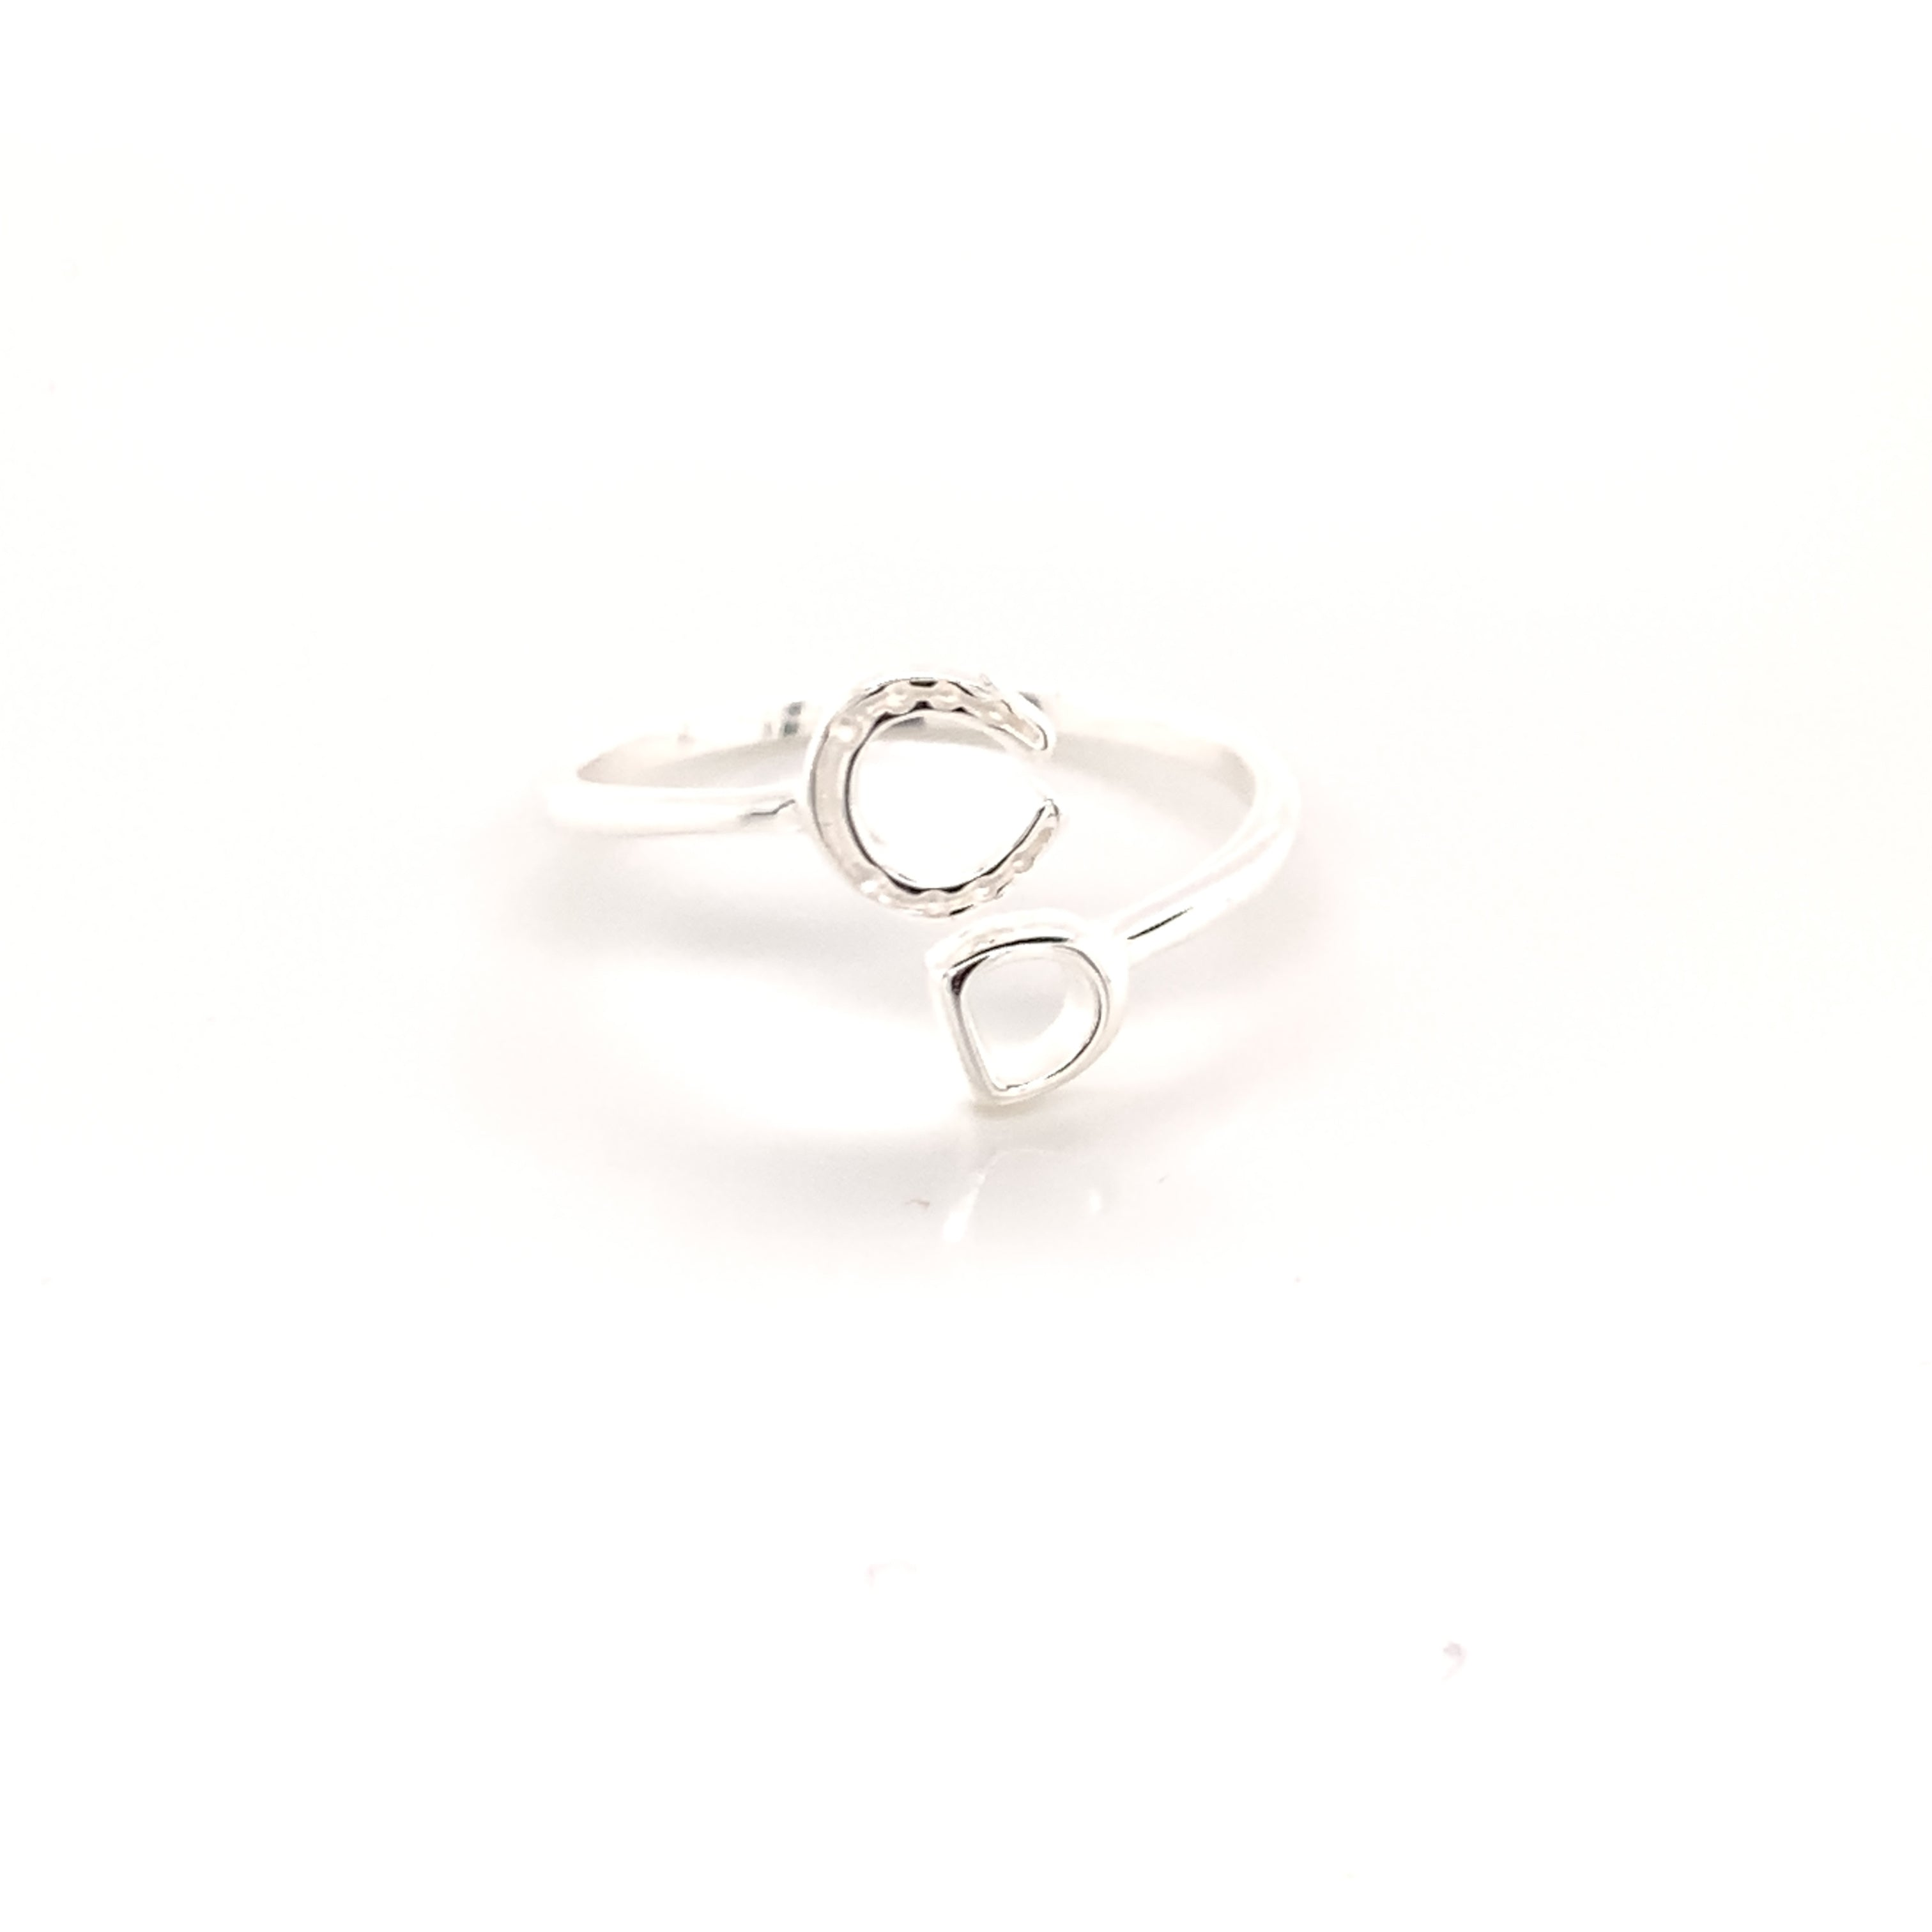 Horseshoe and stirrup equestrian ring